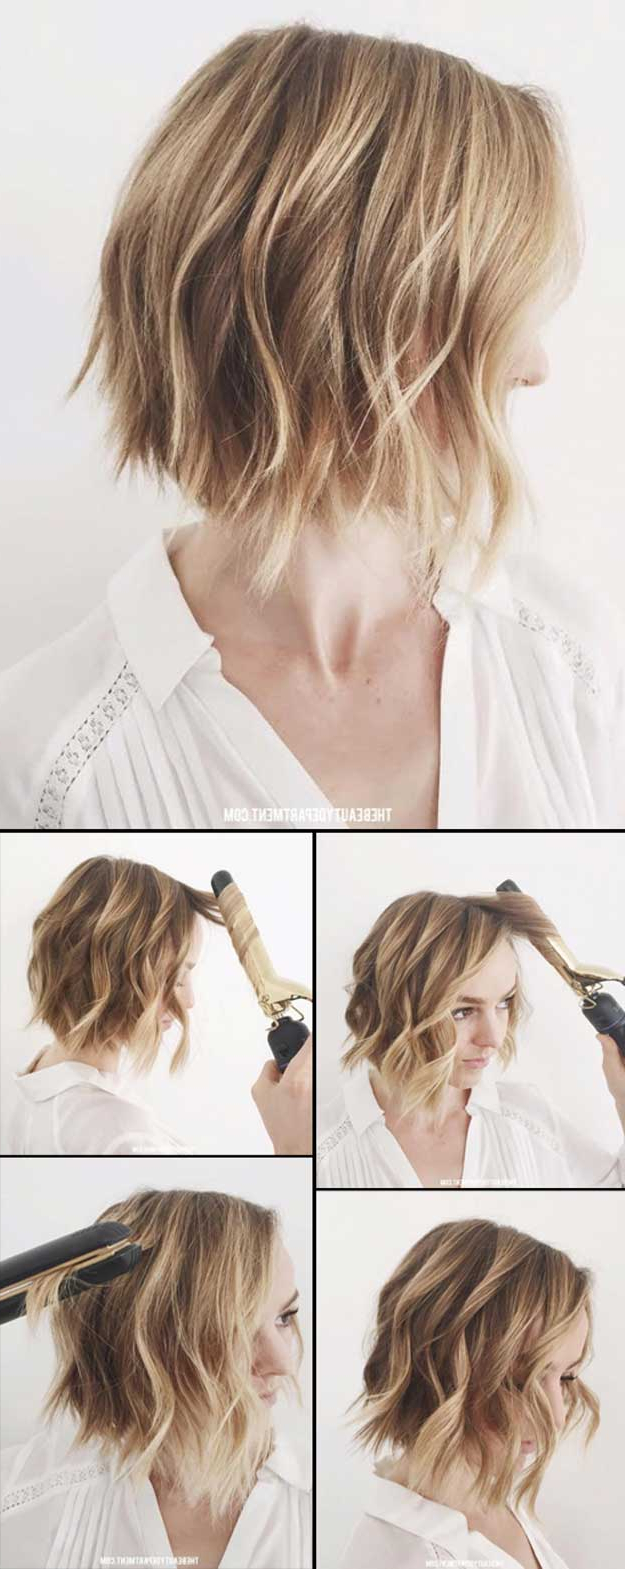 Women Hairstyle : Appealing Cute Updos For Short Hair Simple Regarding Cute Hairstyles For Girls With Short Hair (View 22 of 25)